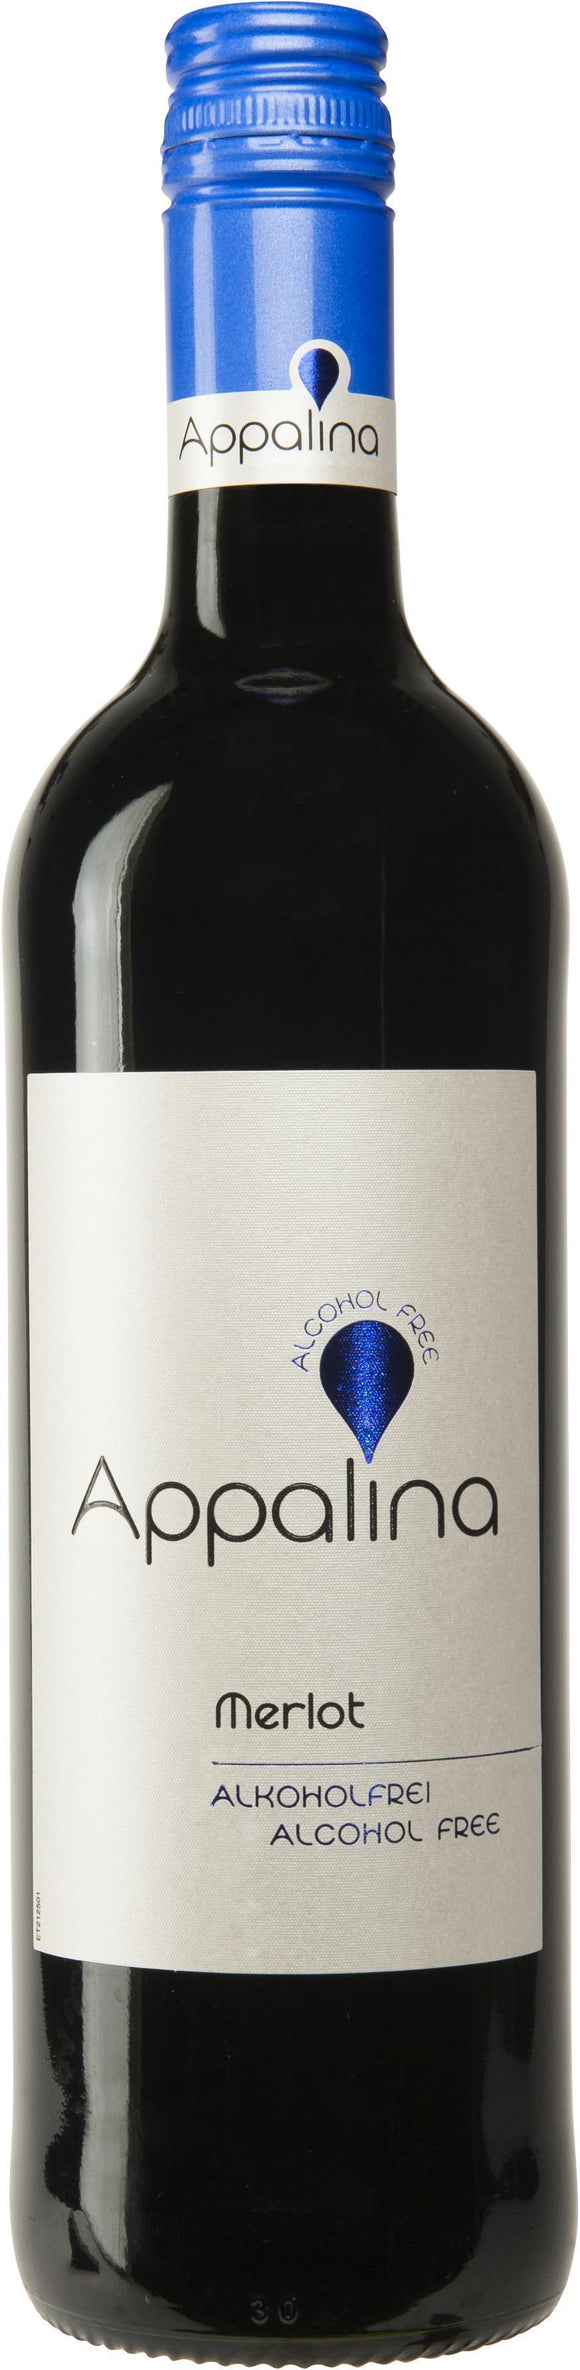 Appalina Merlot, Non Alcohol